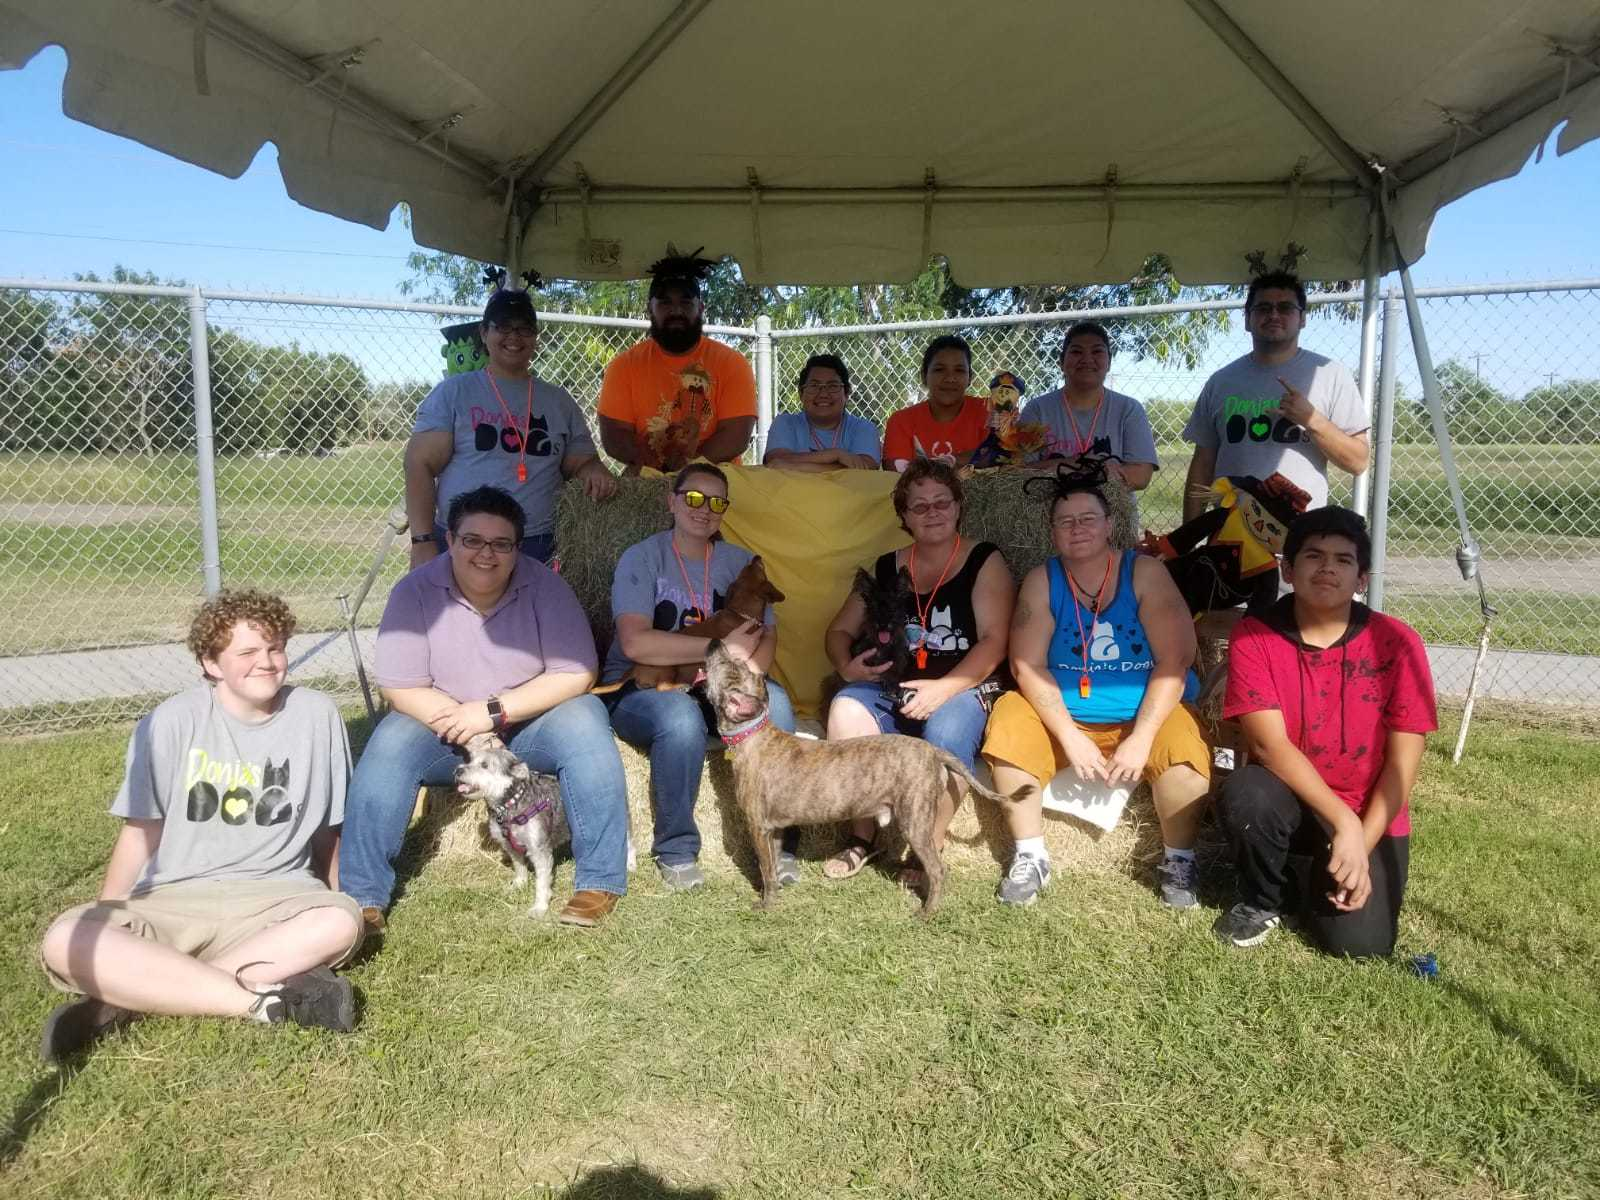 First Annual Donja's Dogs Reunion Volunteers